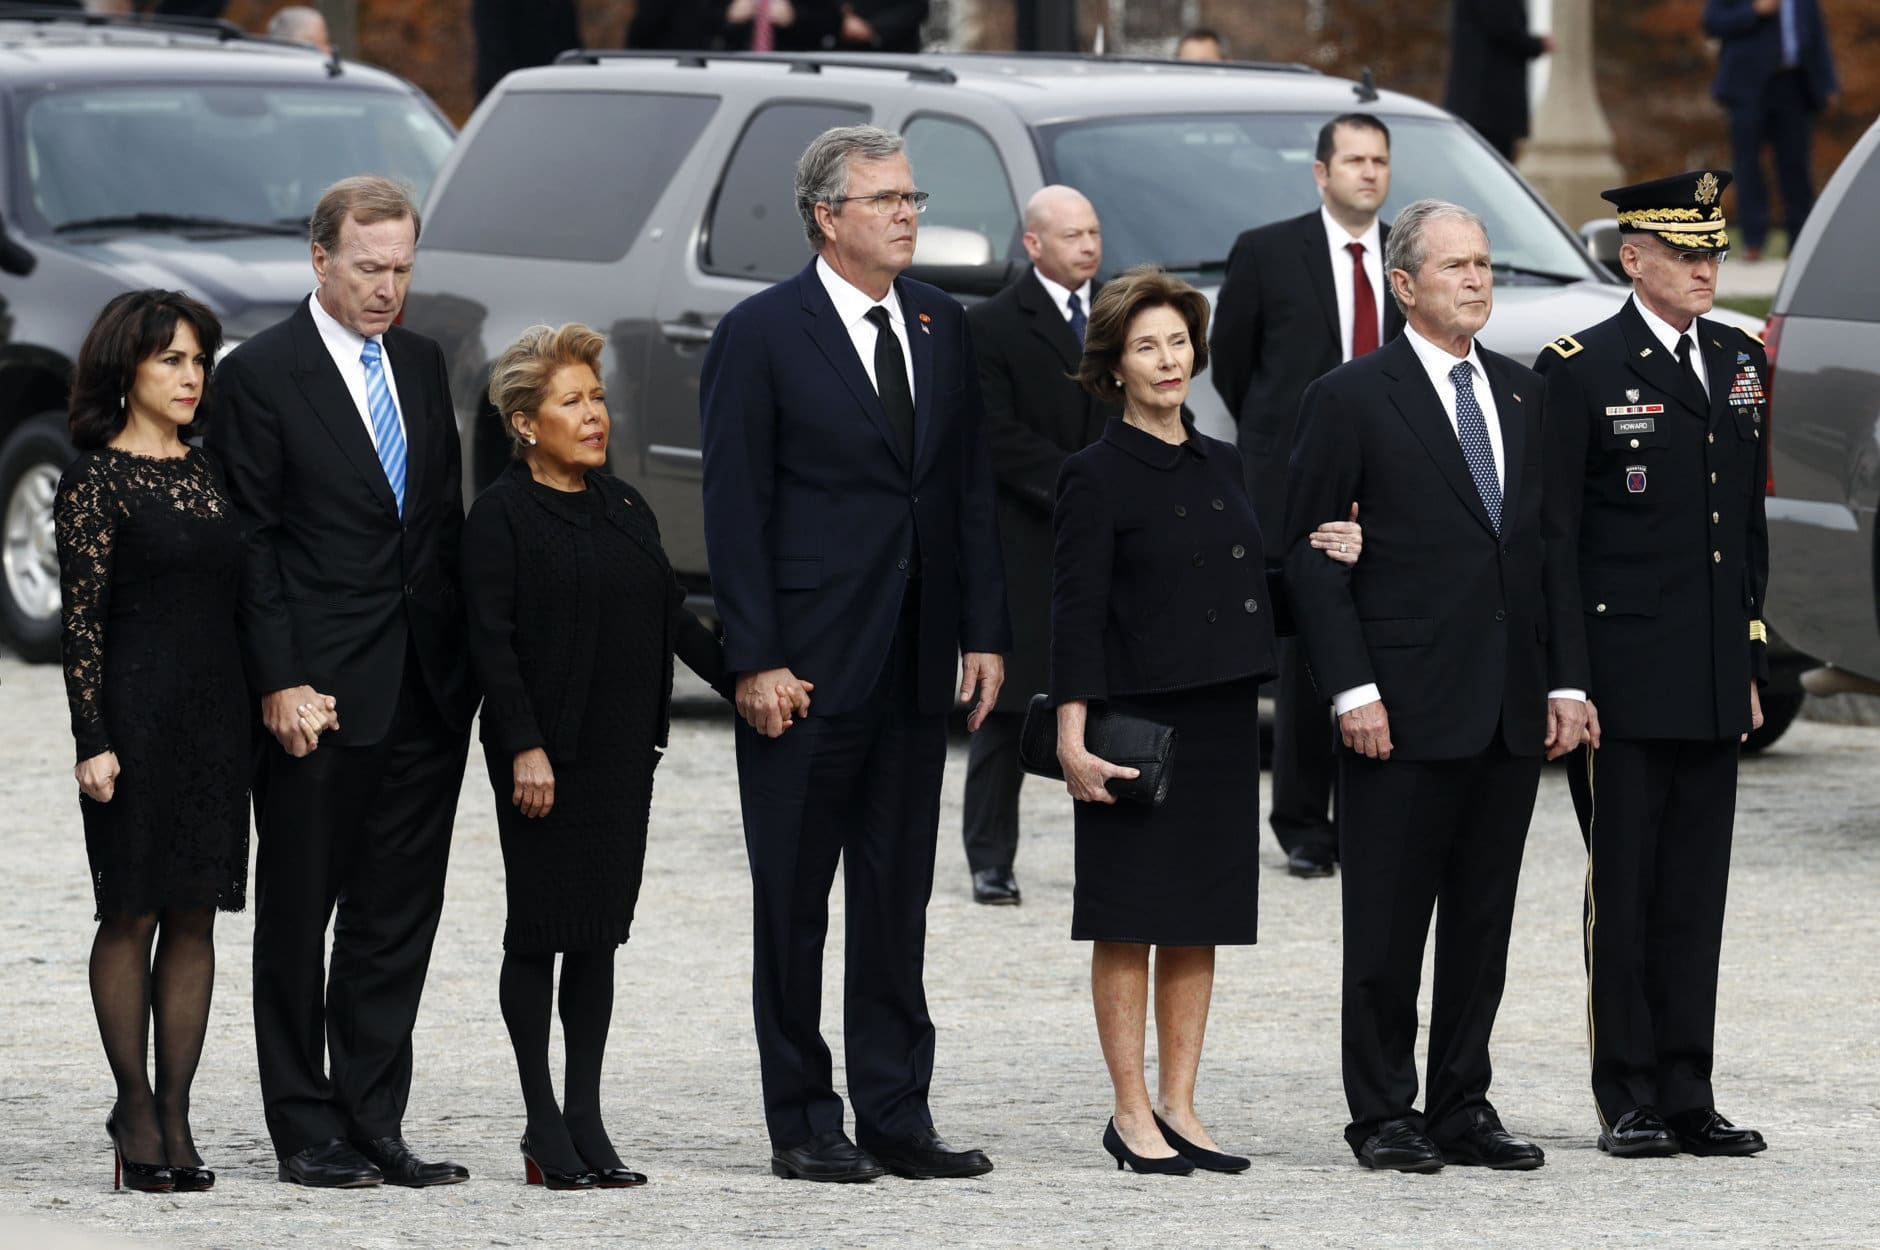 From left, Maria and her husband Neil Bush, Columba Bush, former Florida Gov. Jeb Bush, former first lady Laura Bush and former President George W. Bush arrive for a State Funeral for former President George H.W. Bush at the National Cathedral, Wednesday, Dec. 5, 2018, in Washington. (AP Photo/Patrick Semansky)